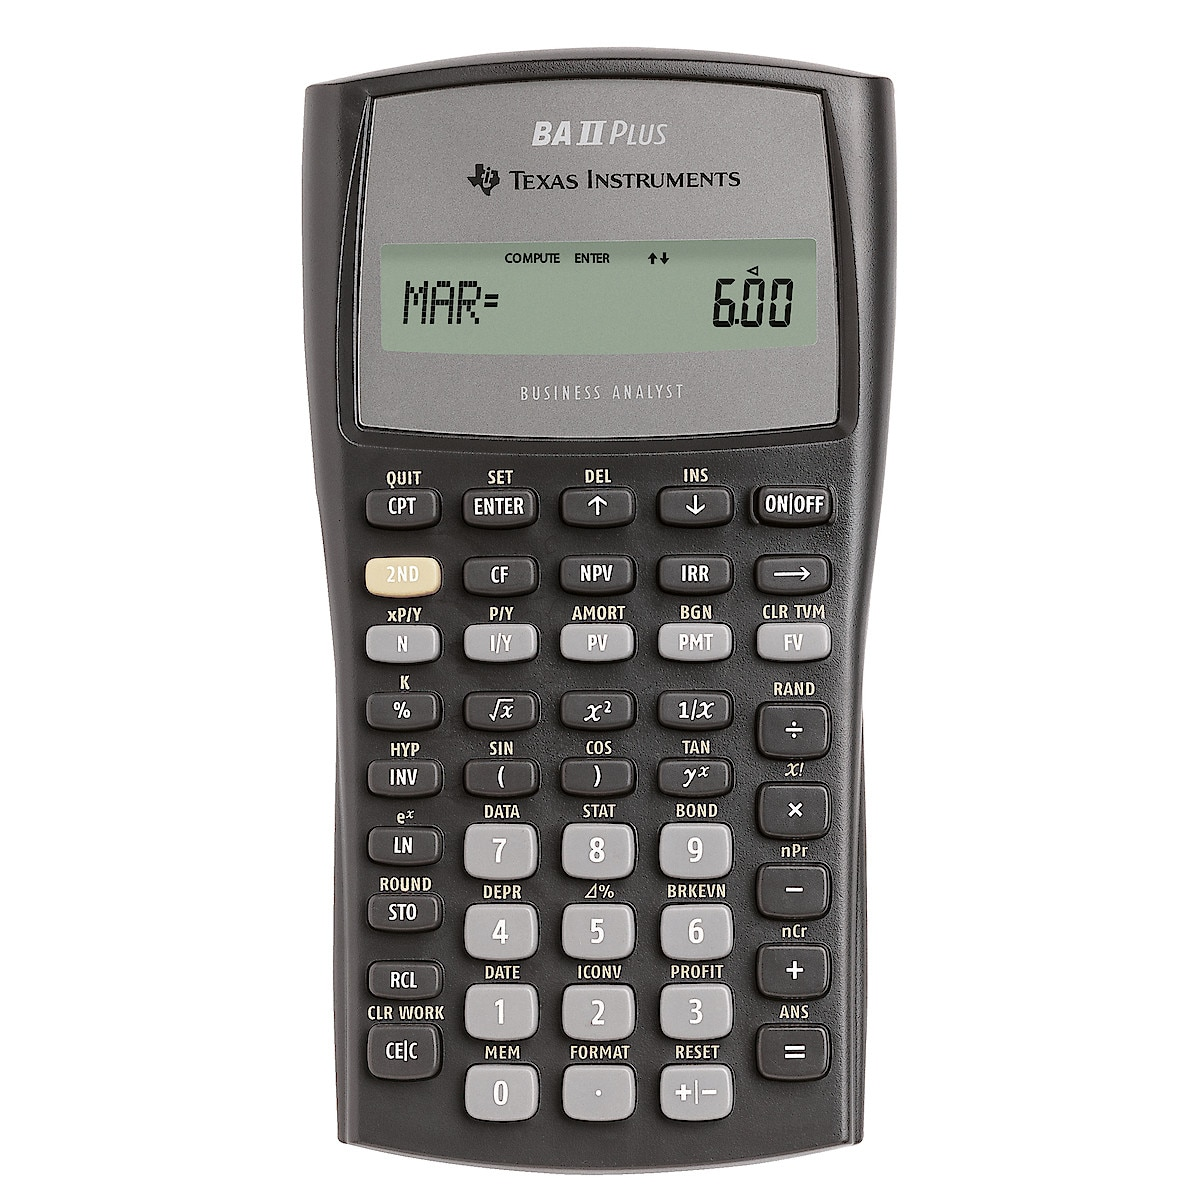 Texas Instruments BAII Plus kalkulator